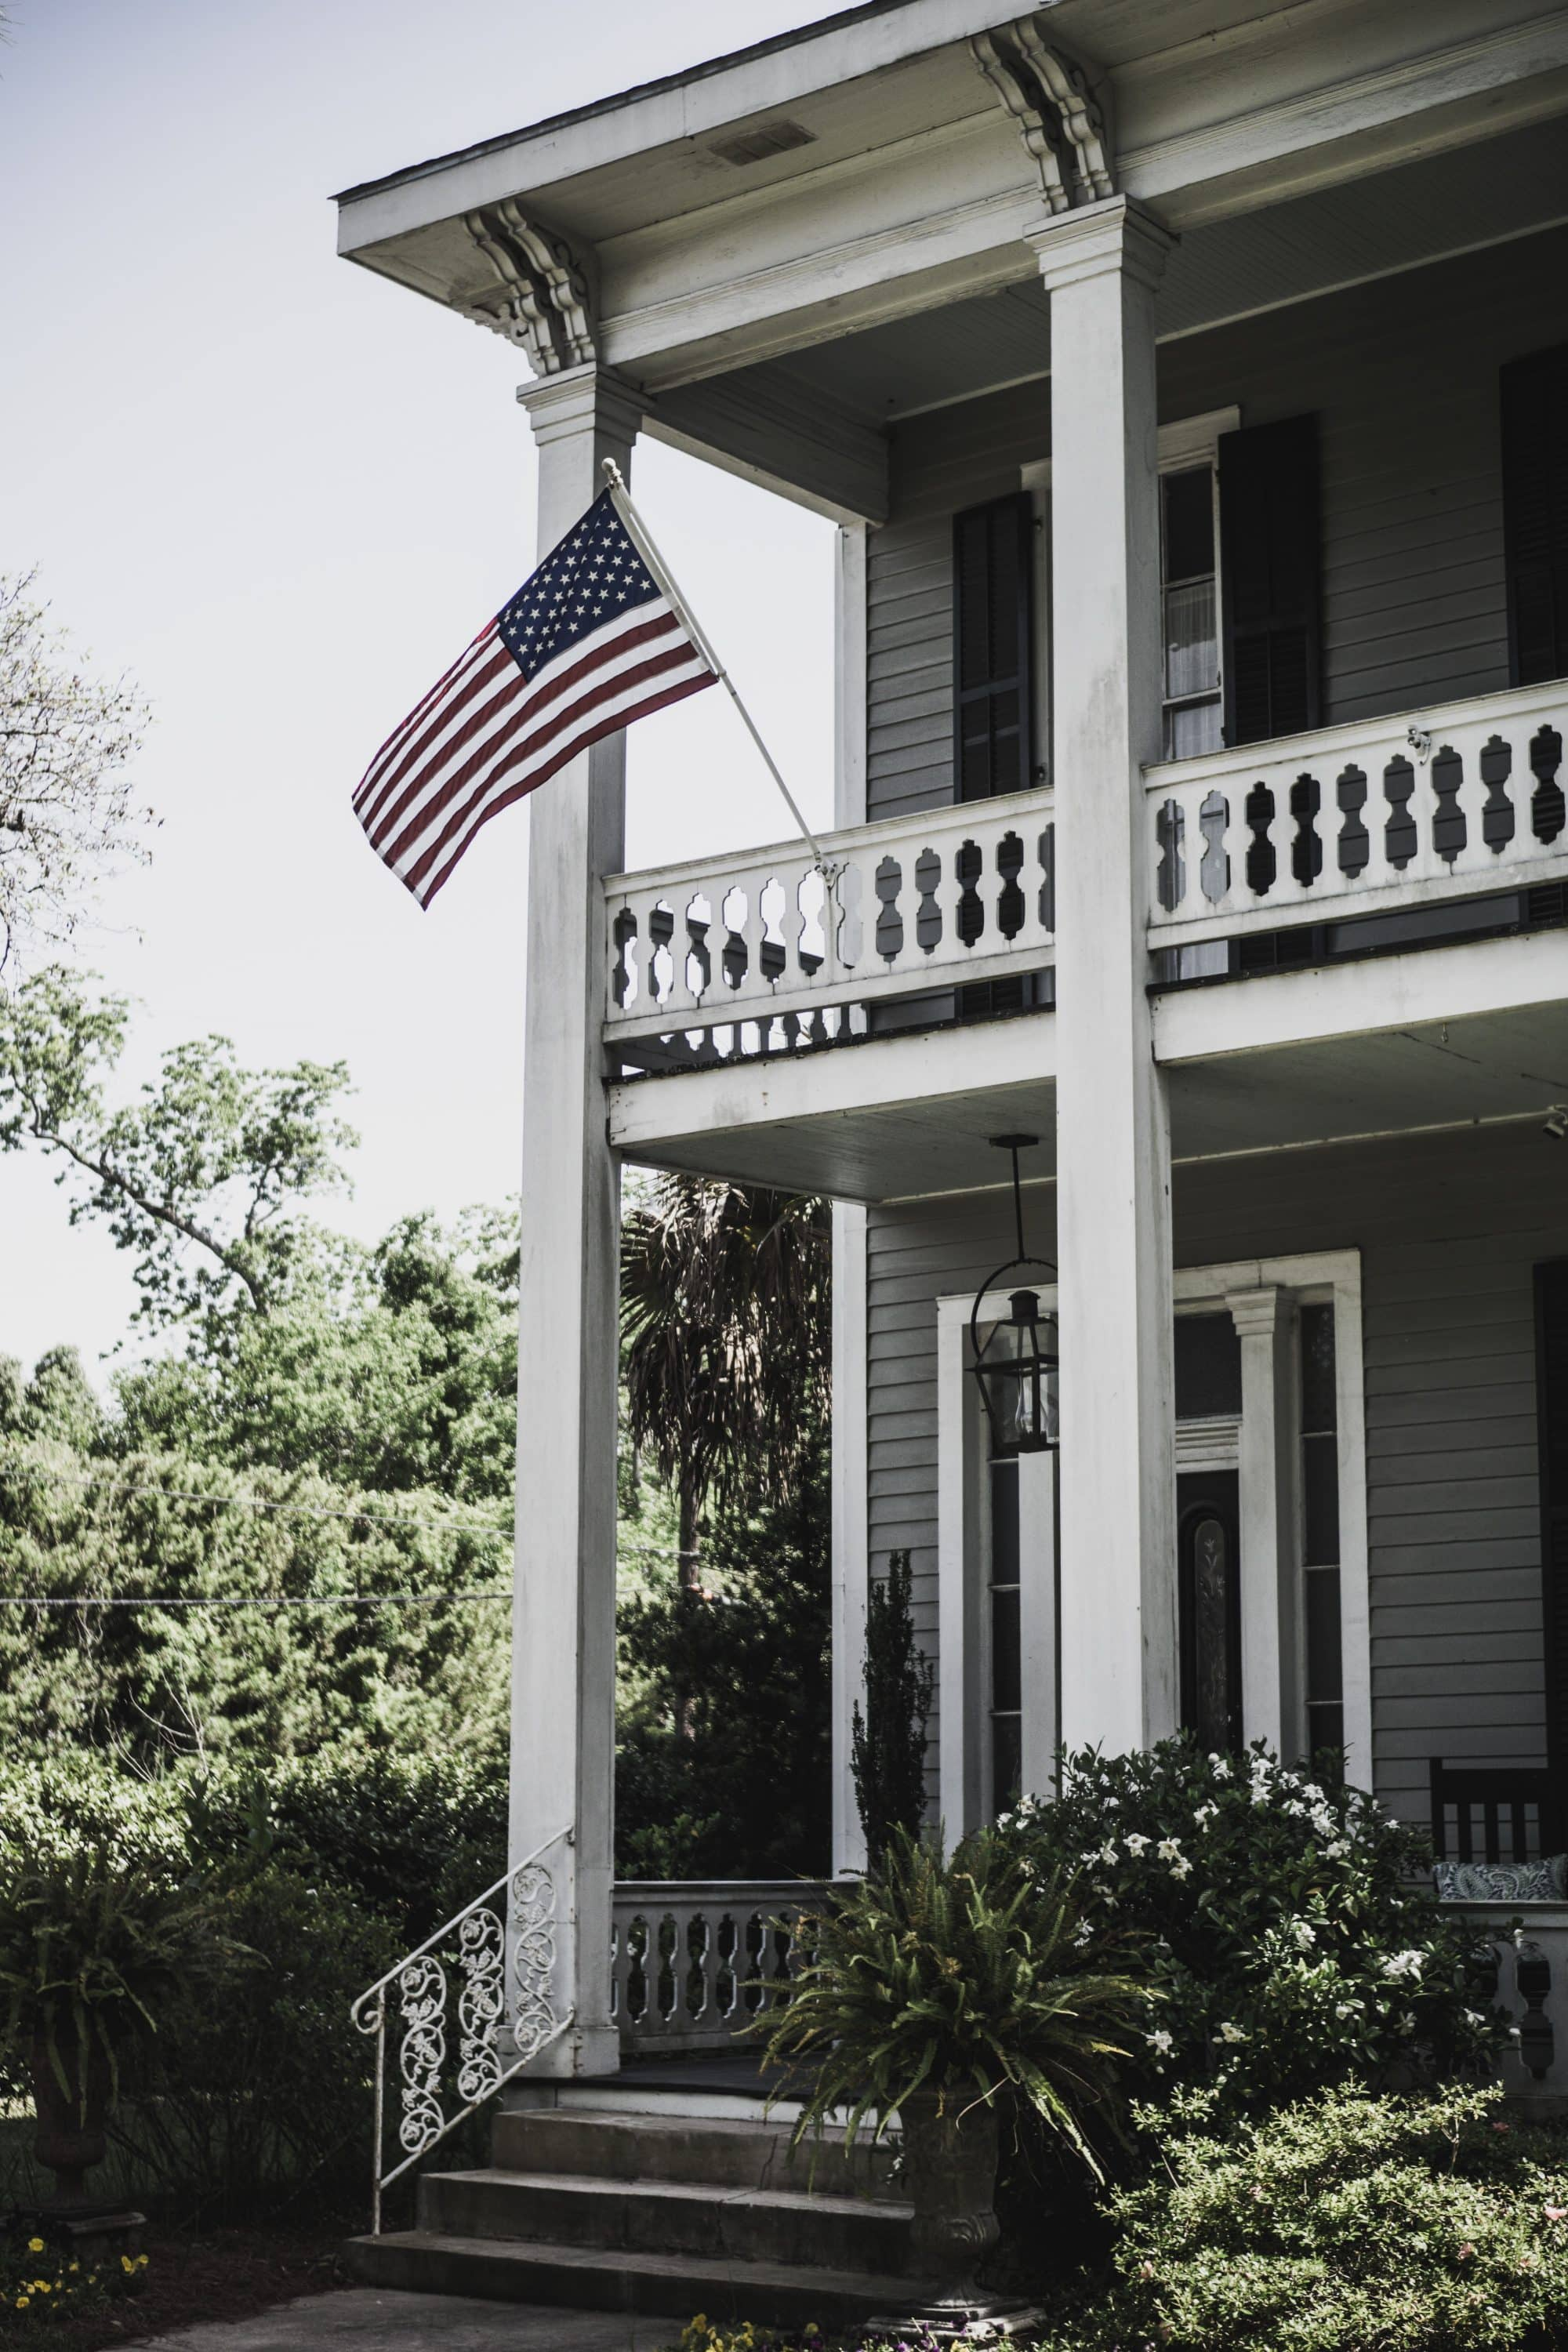 Two Story Colonial House with American Flag